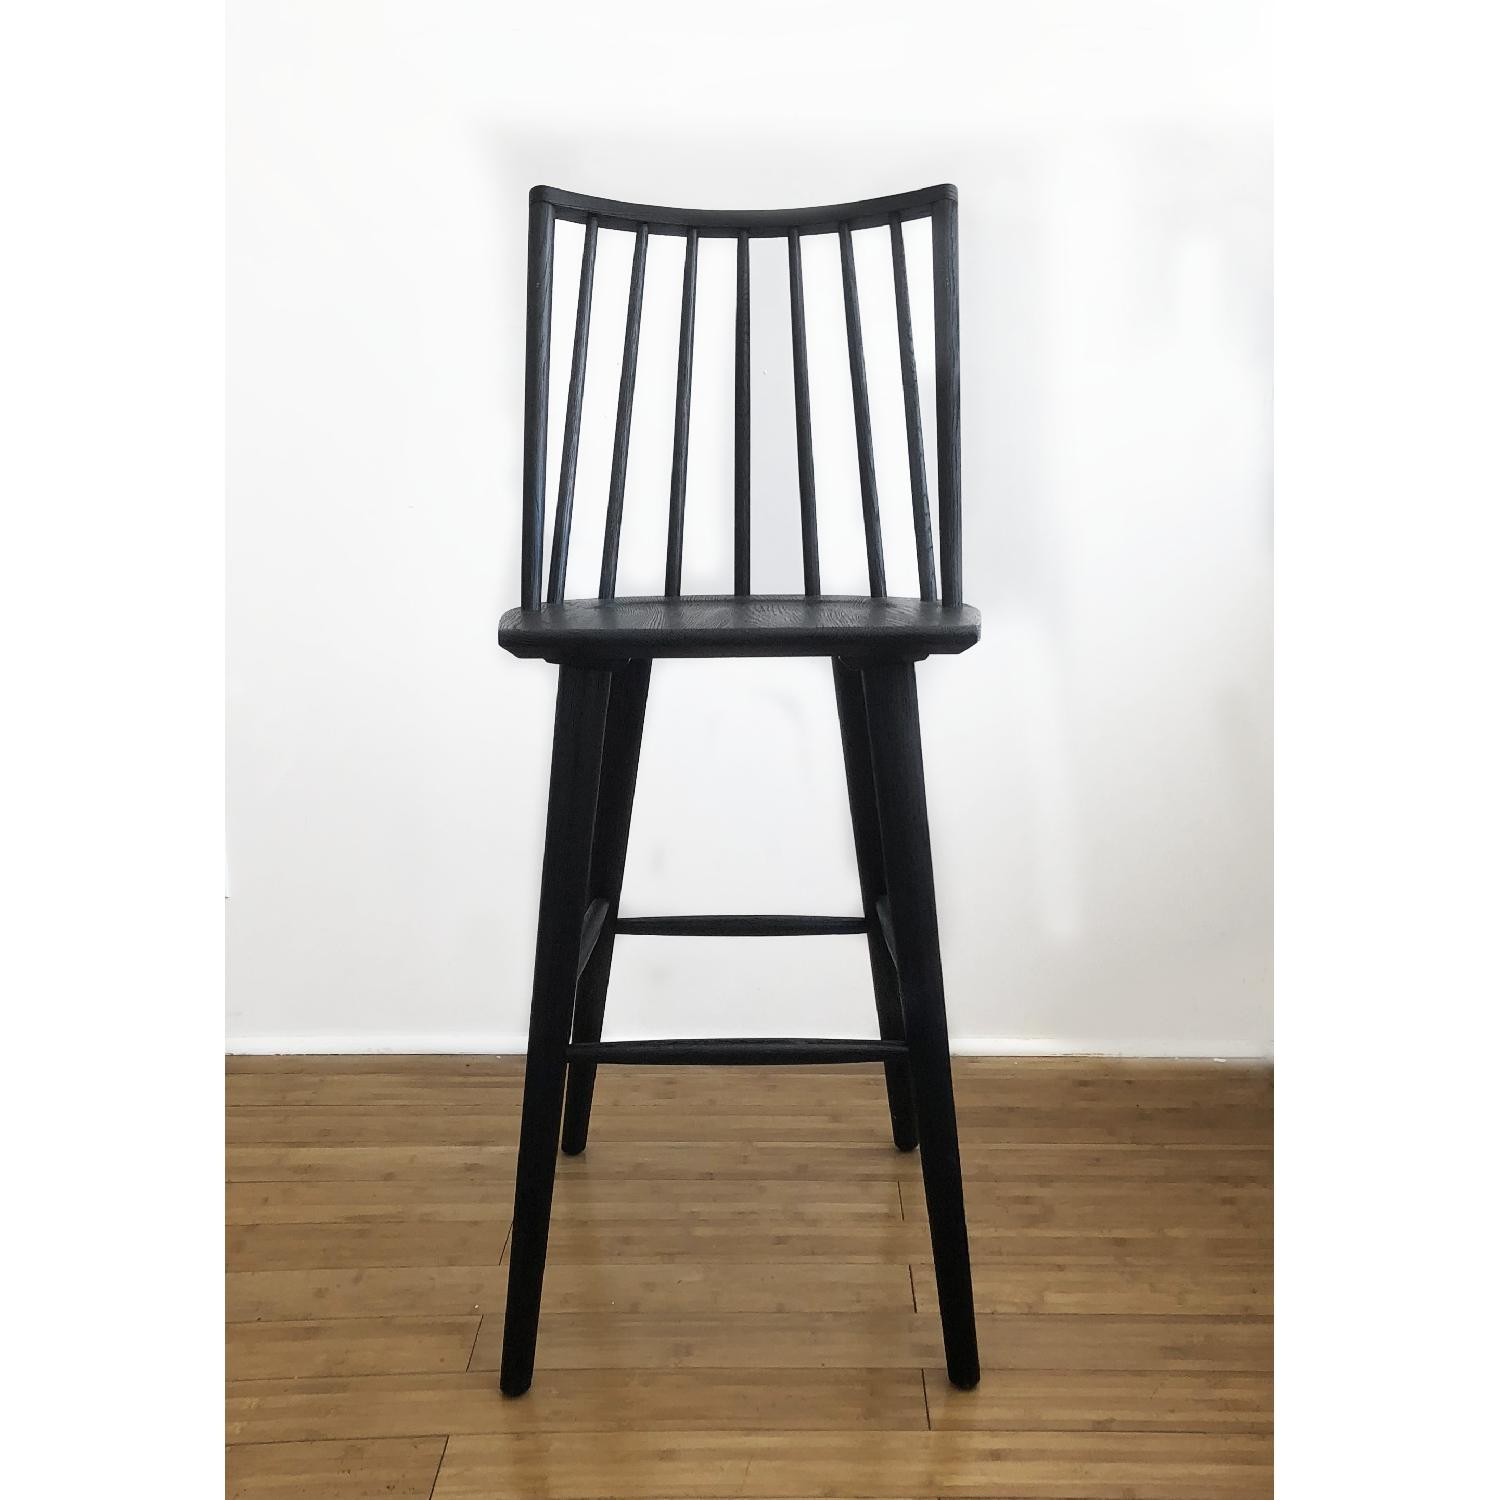 Crate & Barrel Modern Black Oak Windsor Bar Stool - image-4